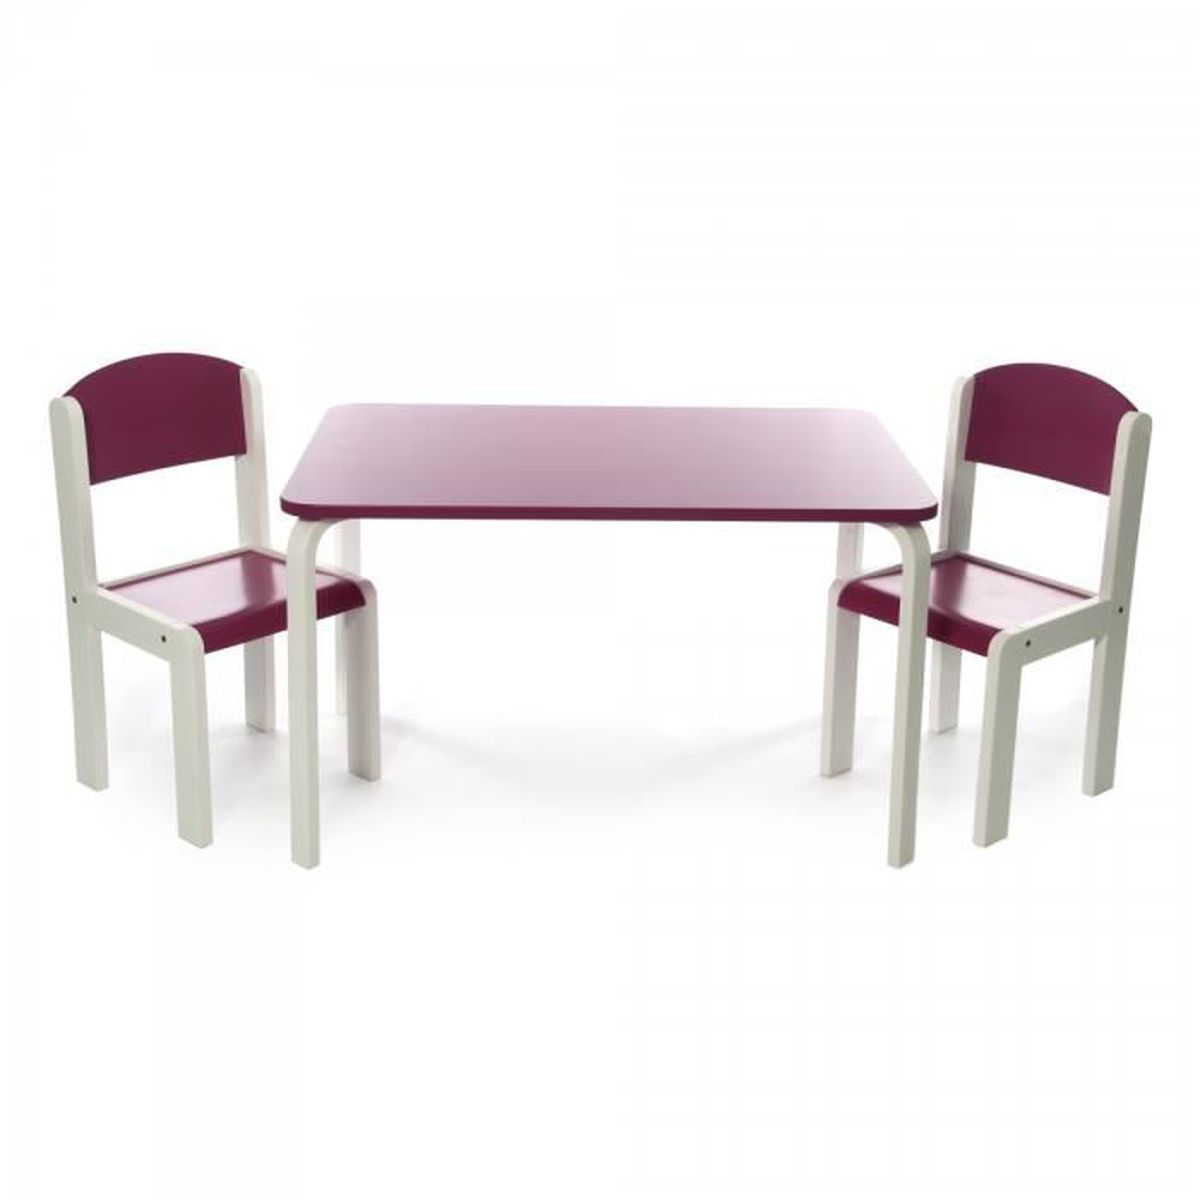 ensemble table et deux chaises en bois pour enfants design fabio xl fuchsia achat vente. Black Bedroom Furniture Sets. Home Design Ideas